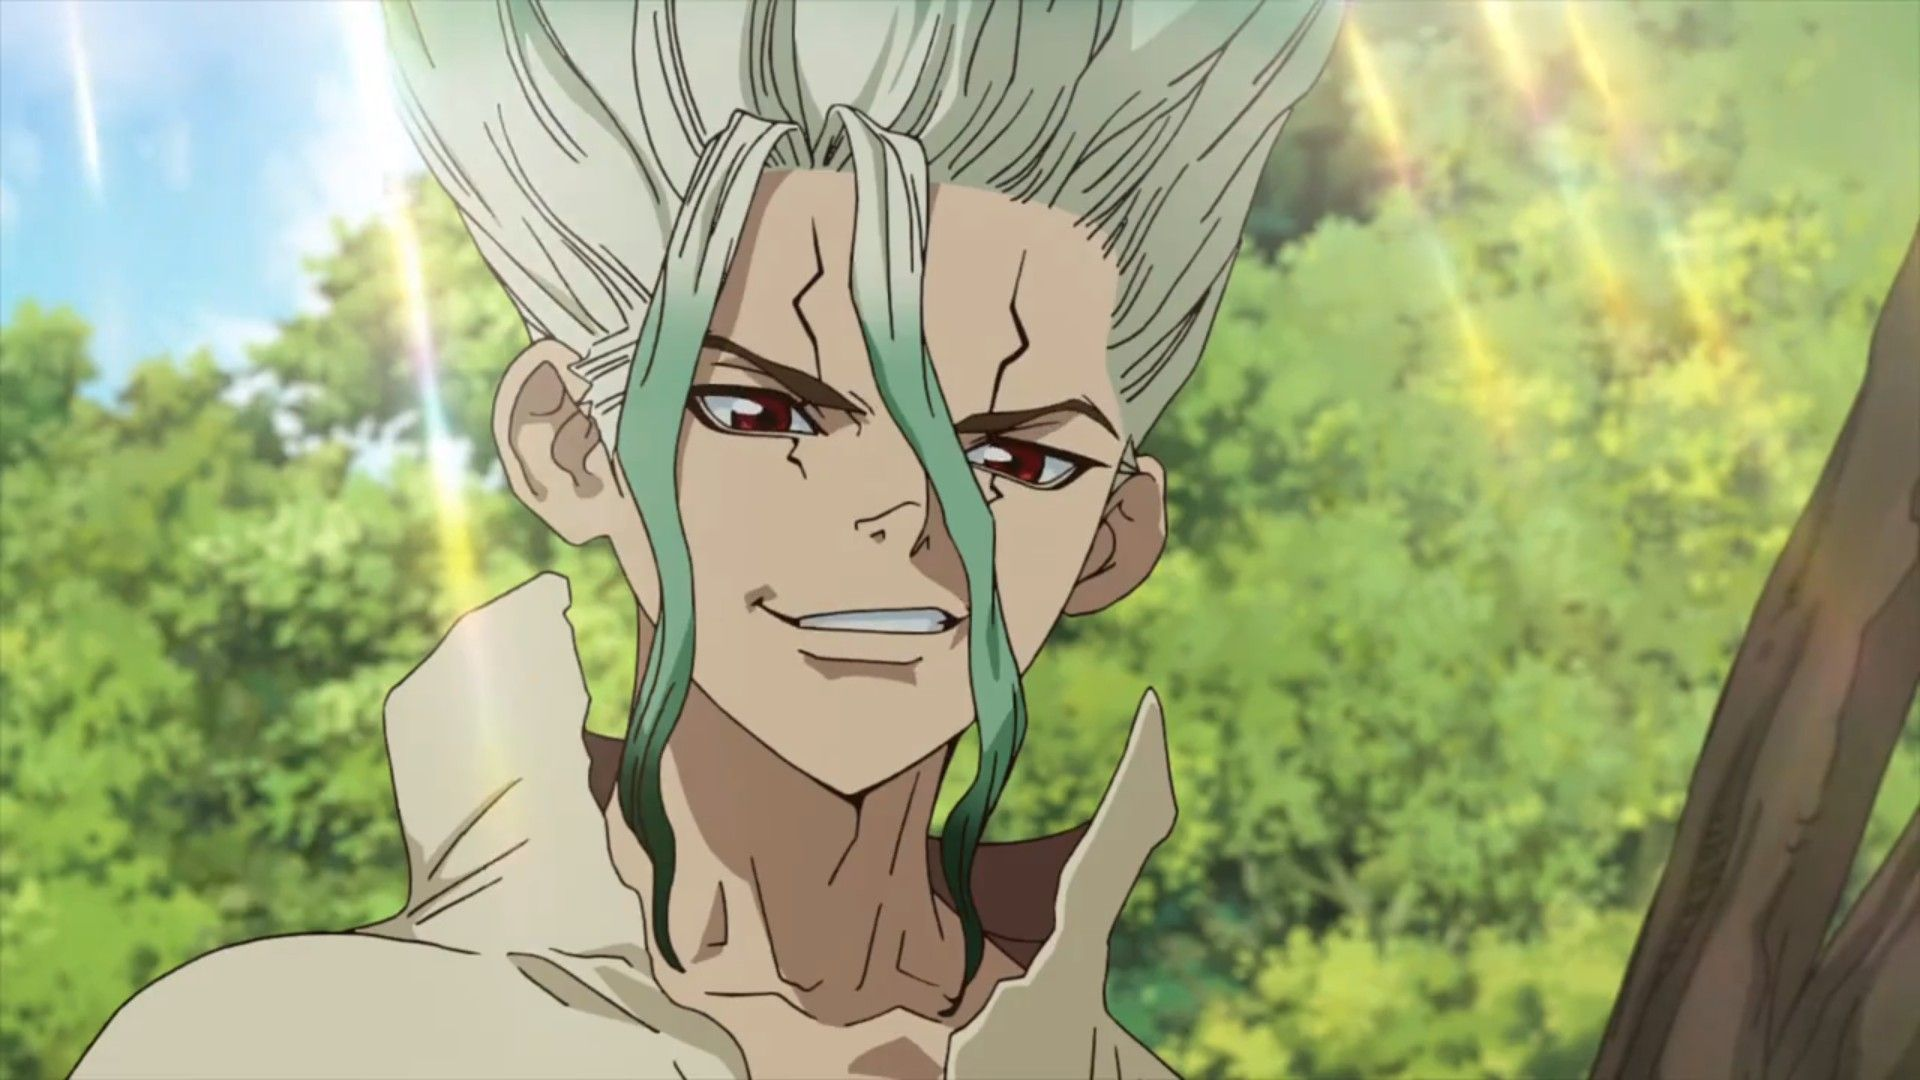 Pin by Nikkichan on Dr. Stone Anime, Anime release